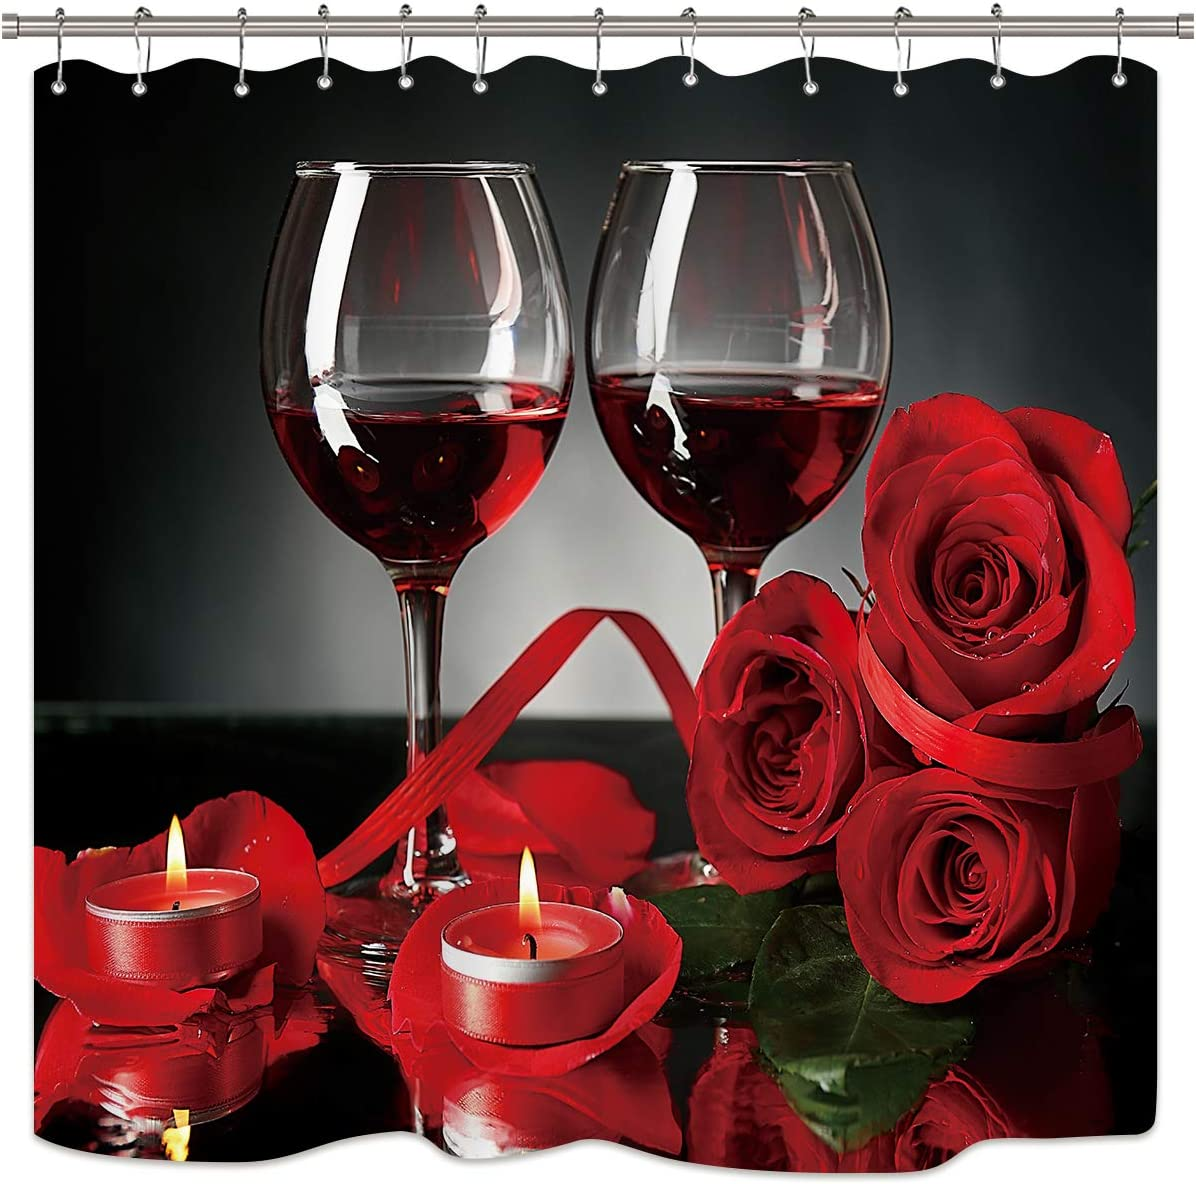 Riyidecor Red Rose and Wine Shower Curtain Panel Floral Blooming Flower Romantic Lovers Decor Fabric Bathroom Set Polyester Waterproof 72Wx72H Inch with Plastic Hooks 12 Pack